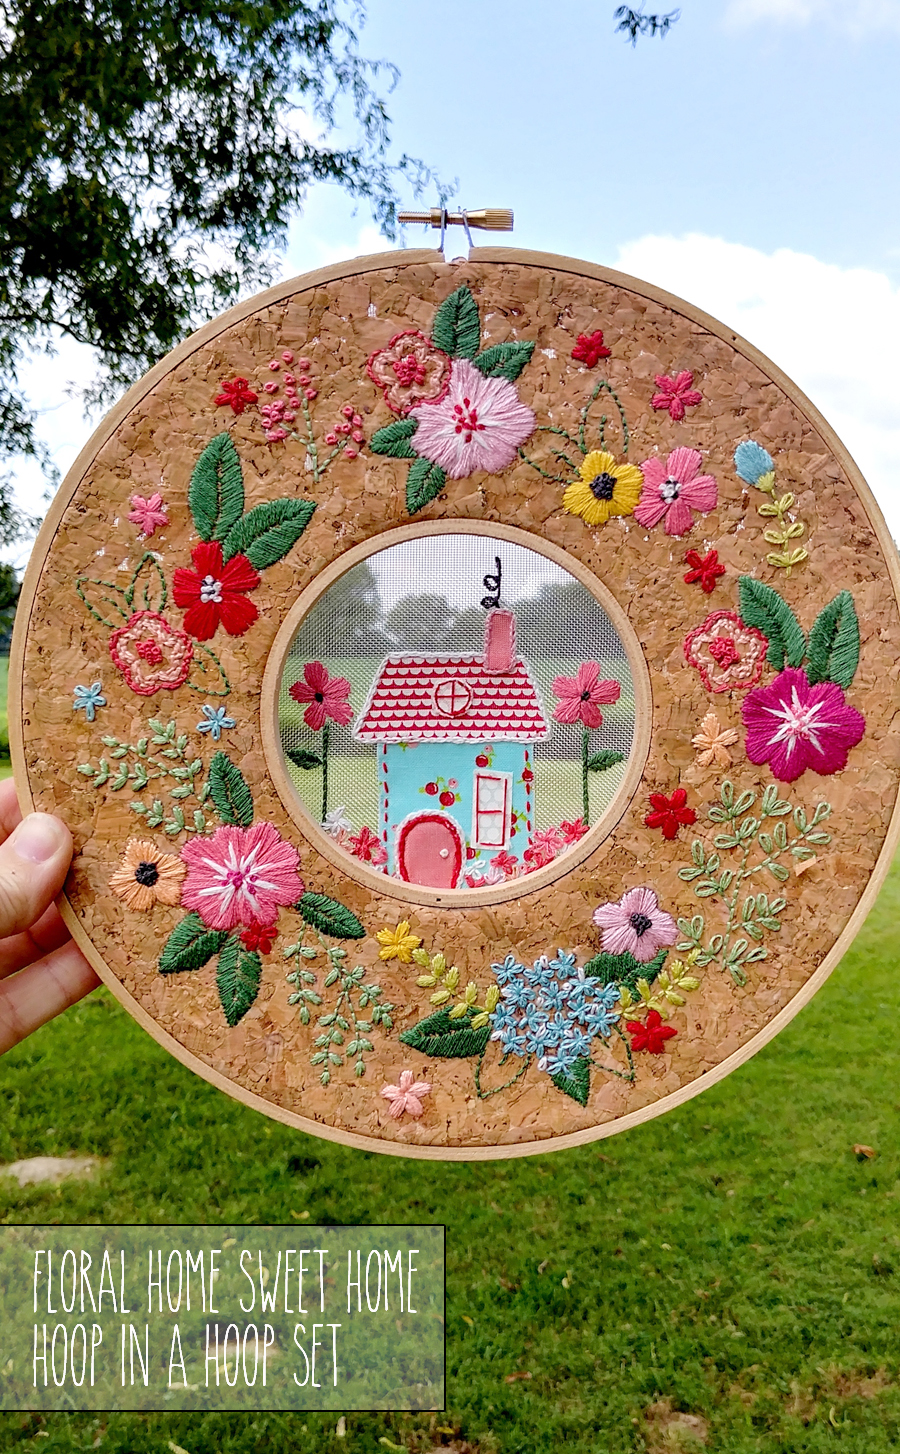 Floral Home Sweet Home Hoop in a Hoop Embroidery